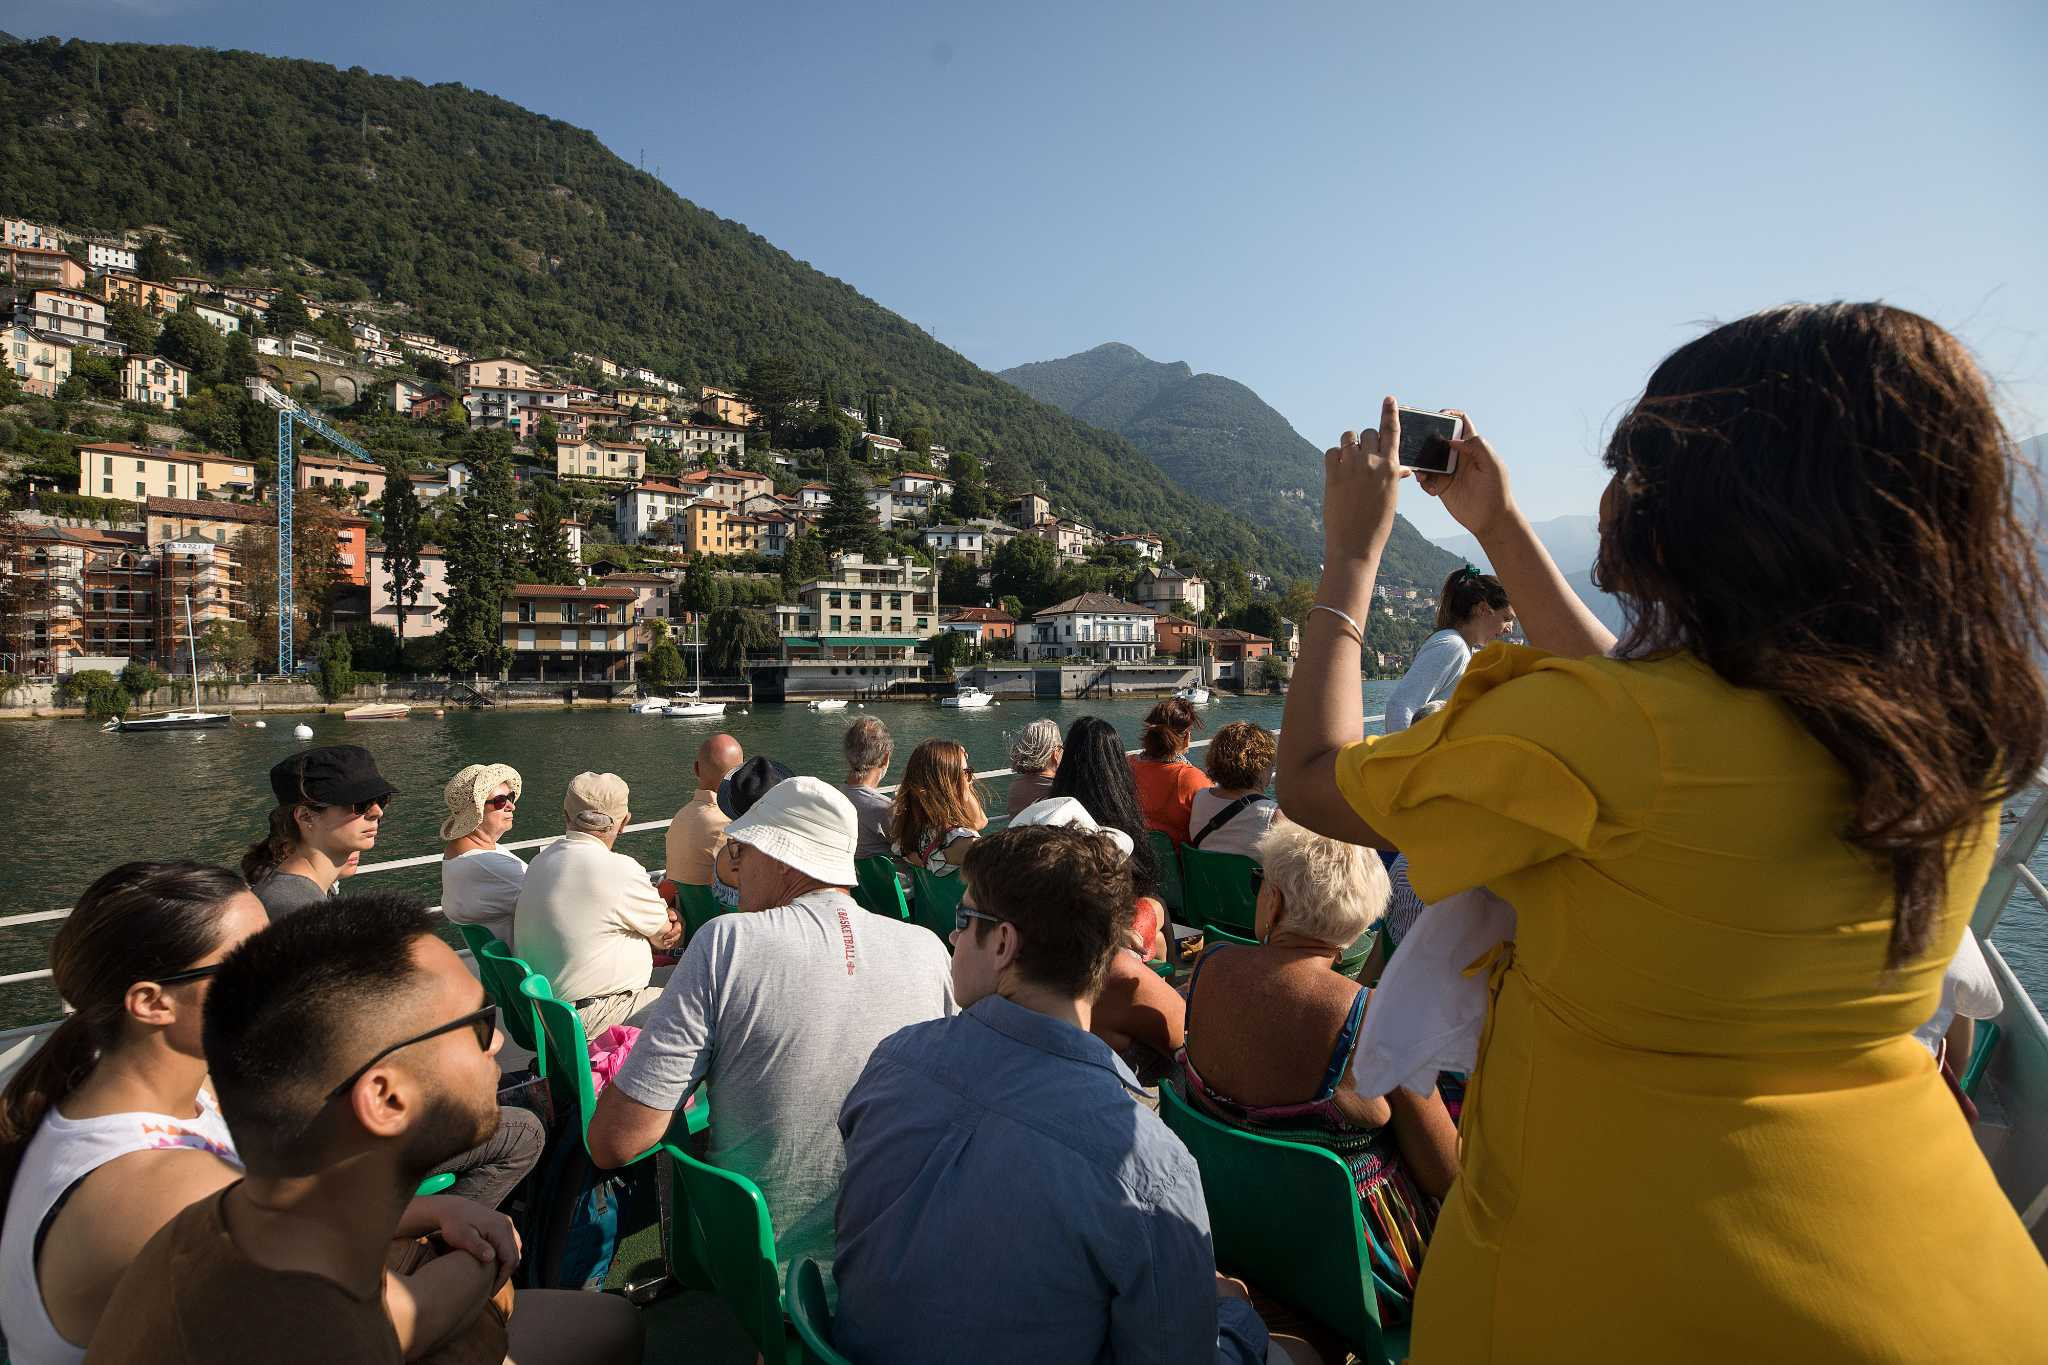 meet lake como singles Back to top meet lilla and more of our team meet federica and more of our  team meet antoinette and more of our team meet tunde and more of our team.